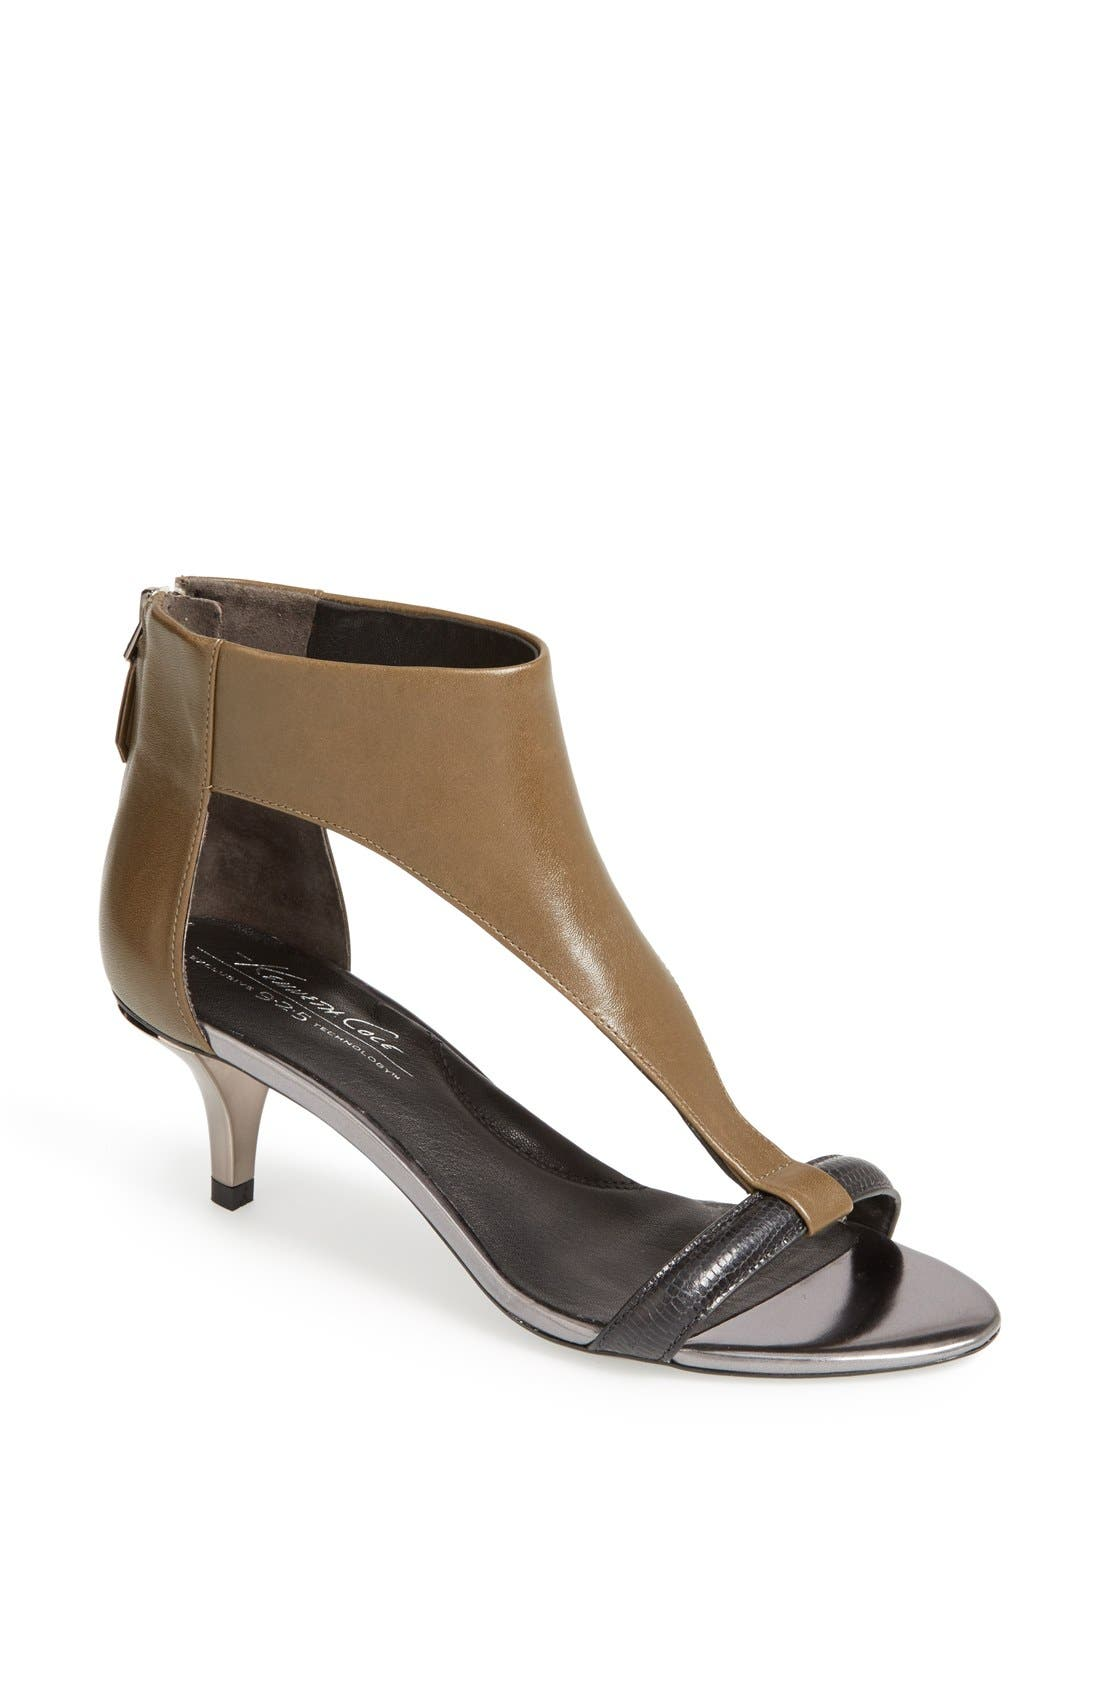 Alternate Image 1 Selected - Kenneth Cole New York 'Havemeyer' Leather Sandal